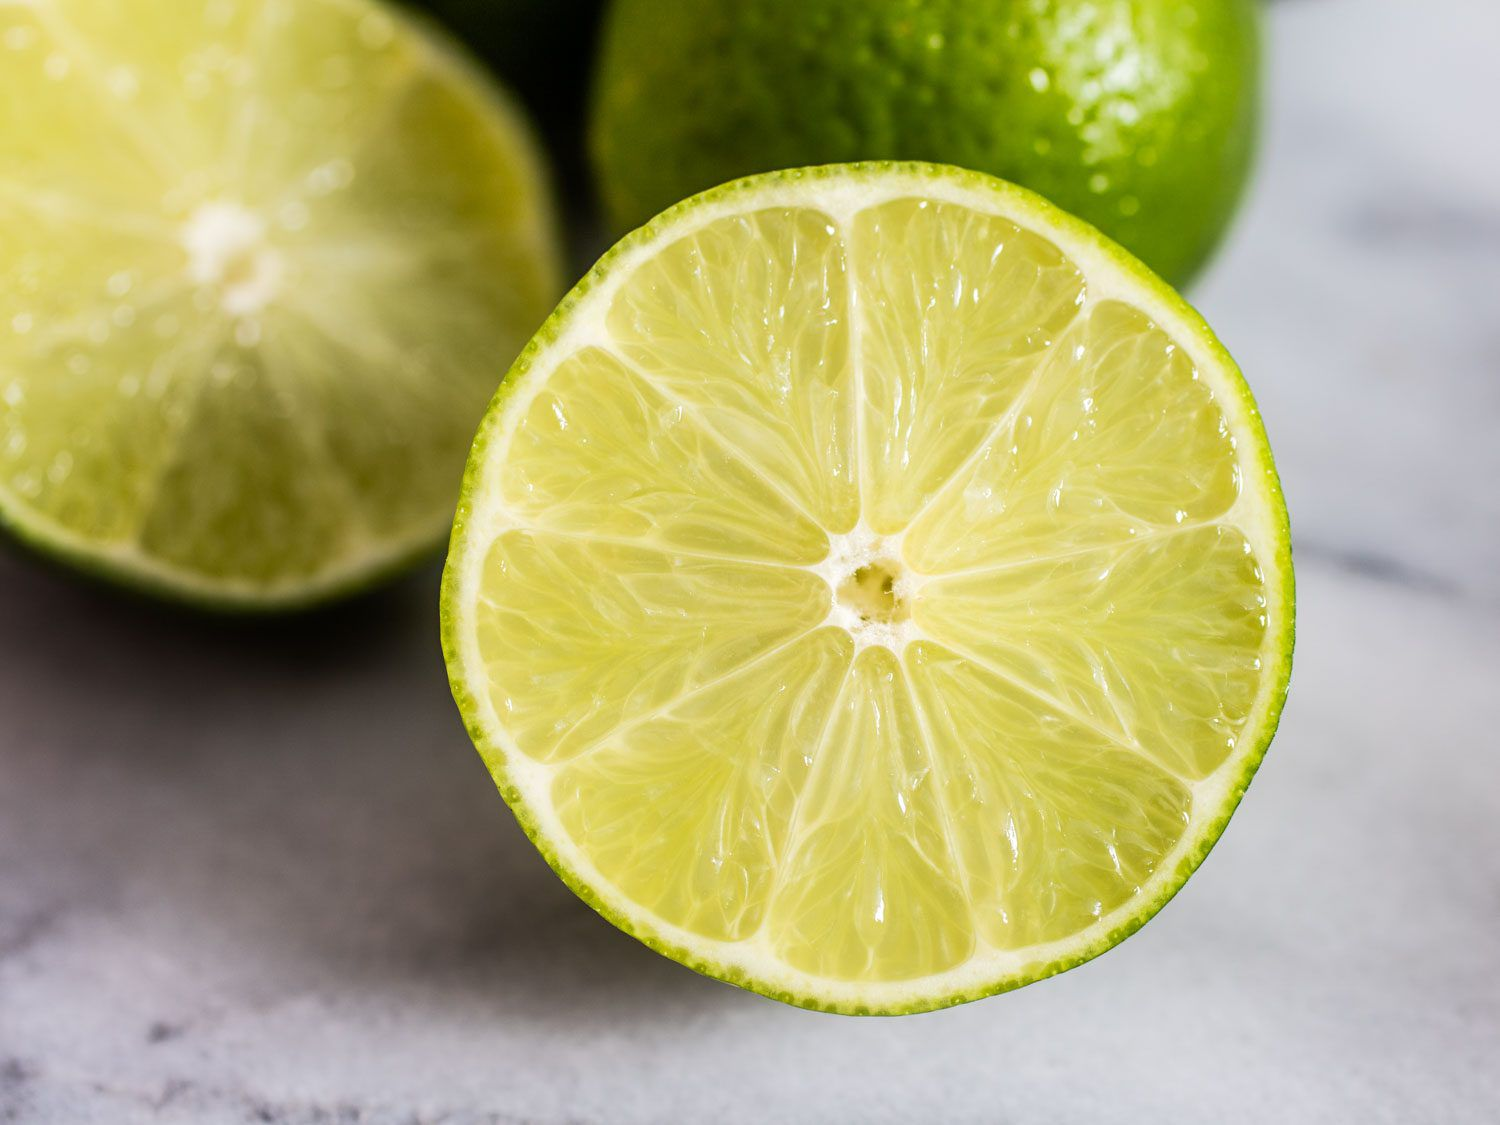 Close-up of halved limes